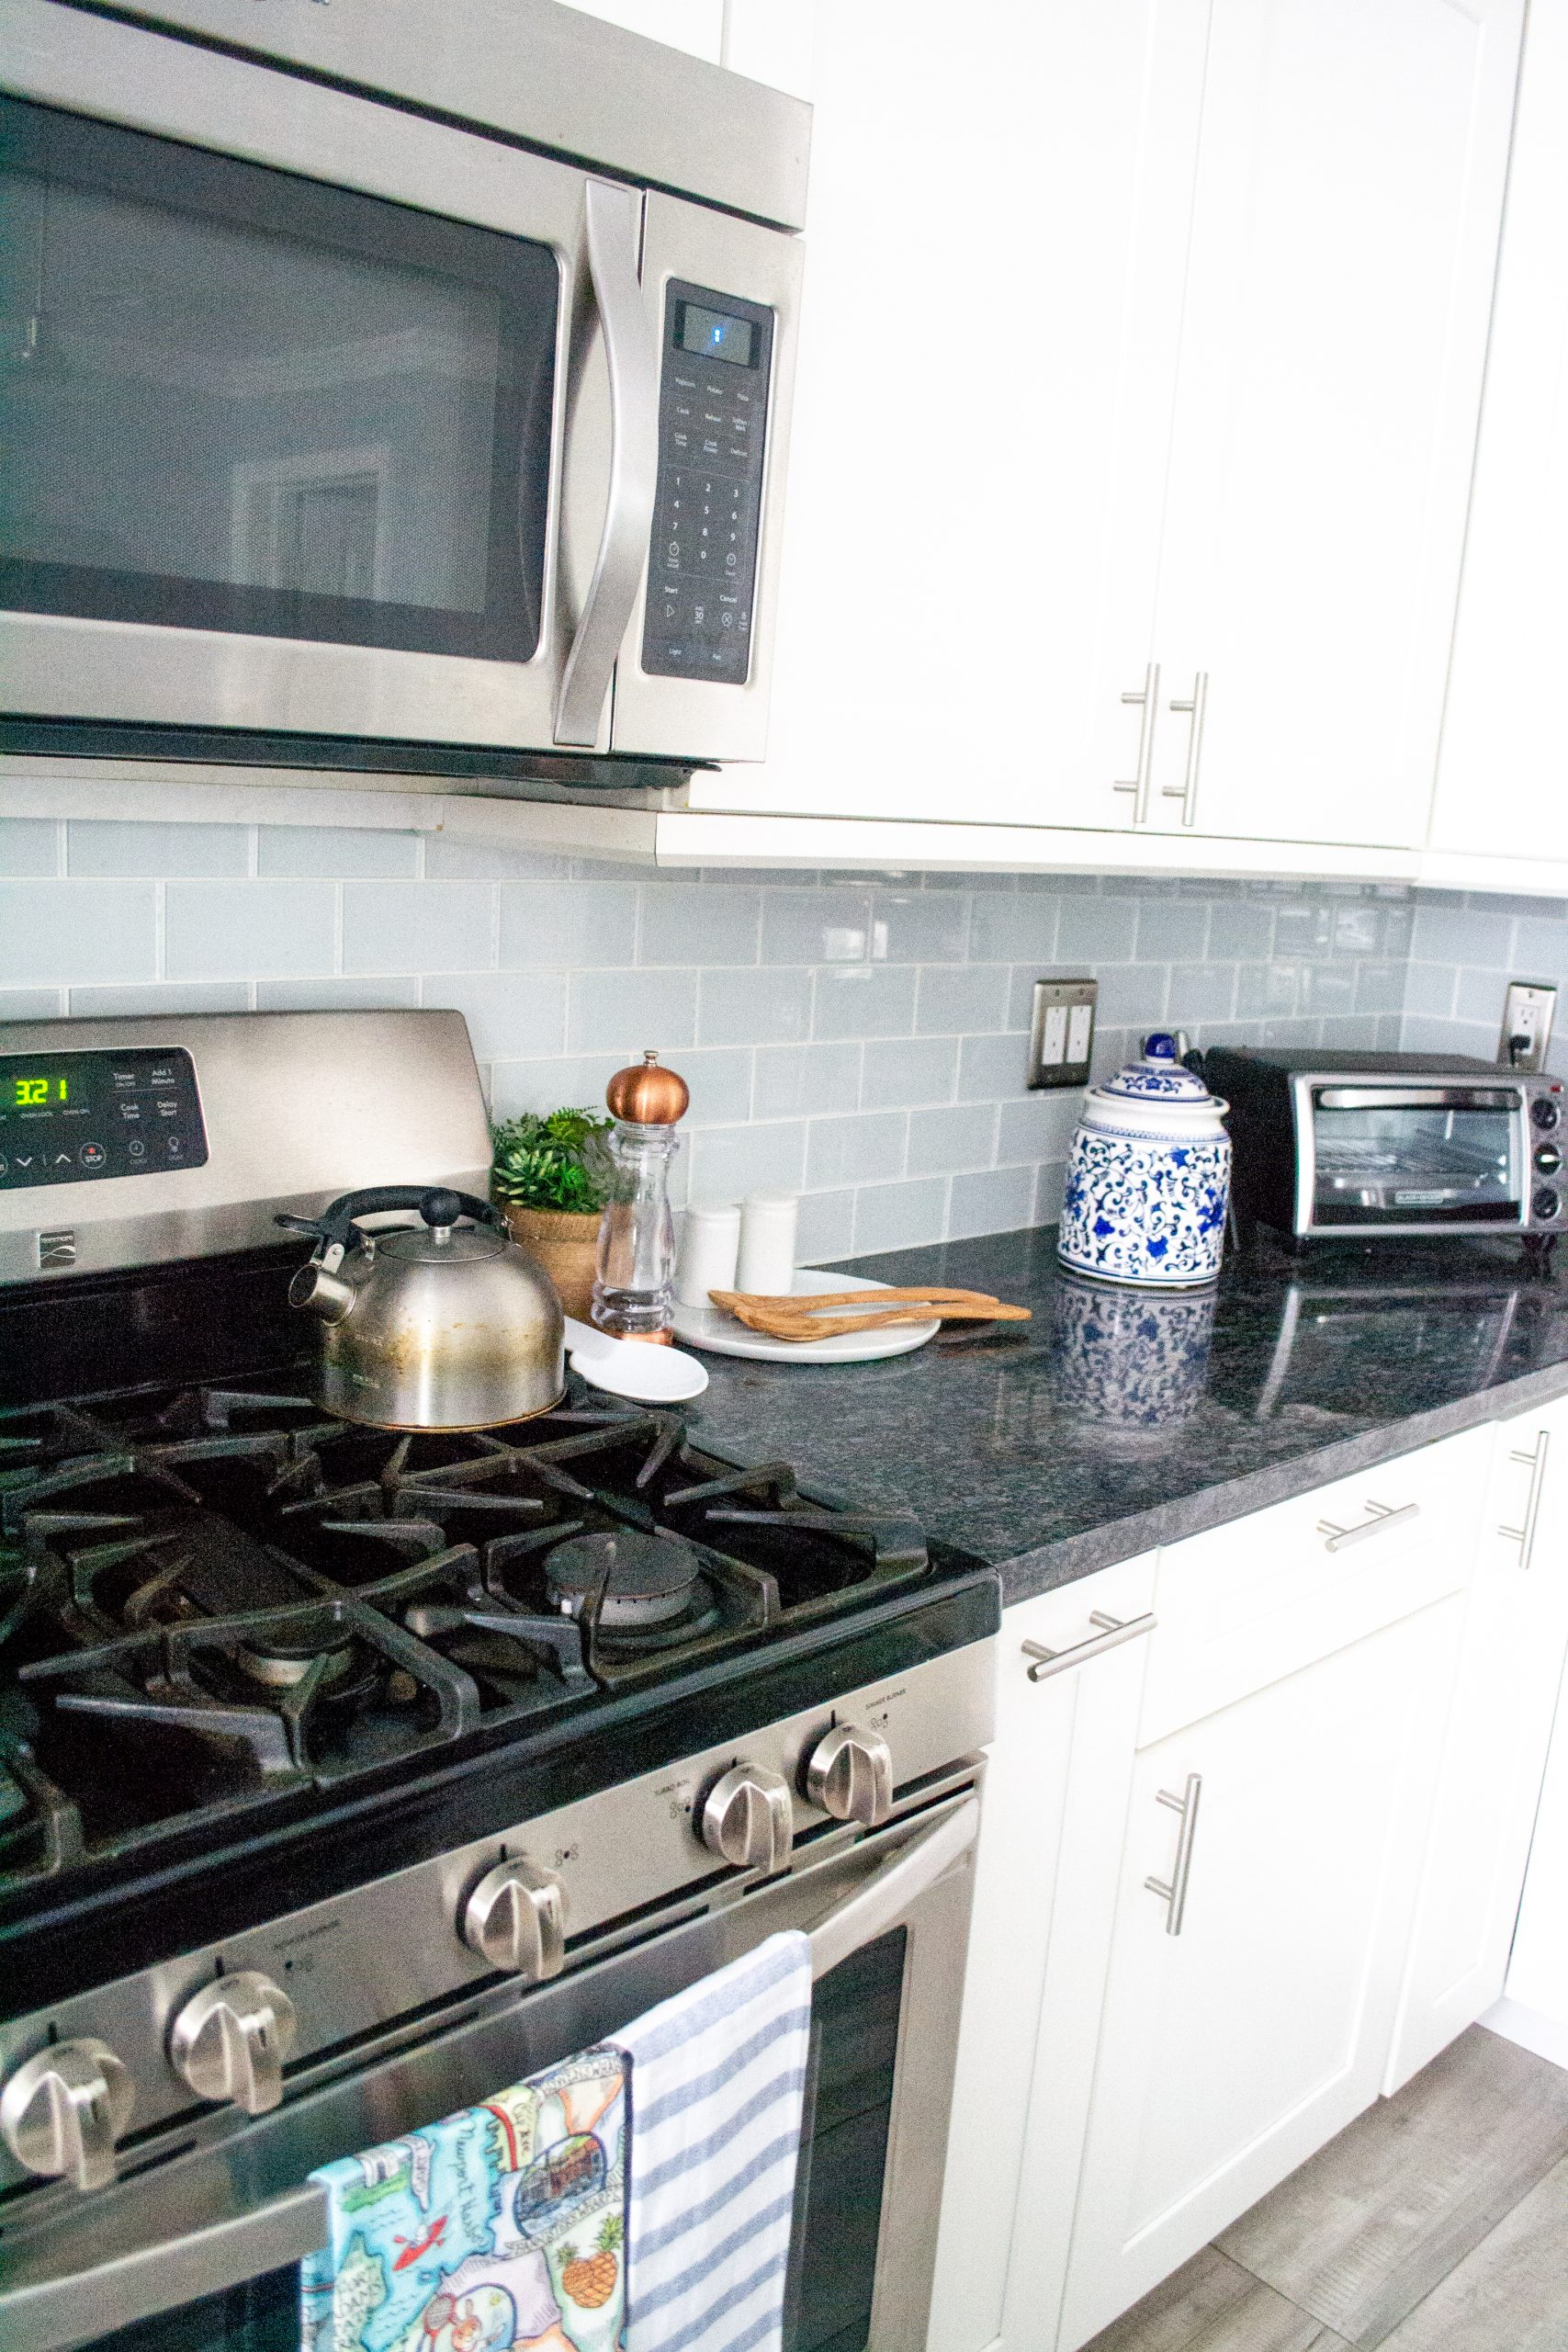 How We Decorated Our Kitchen on a Budget